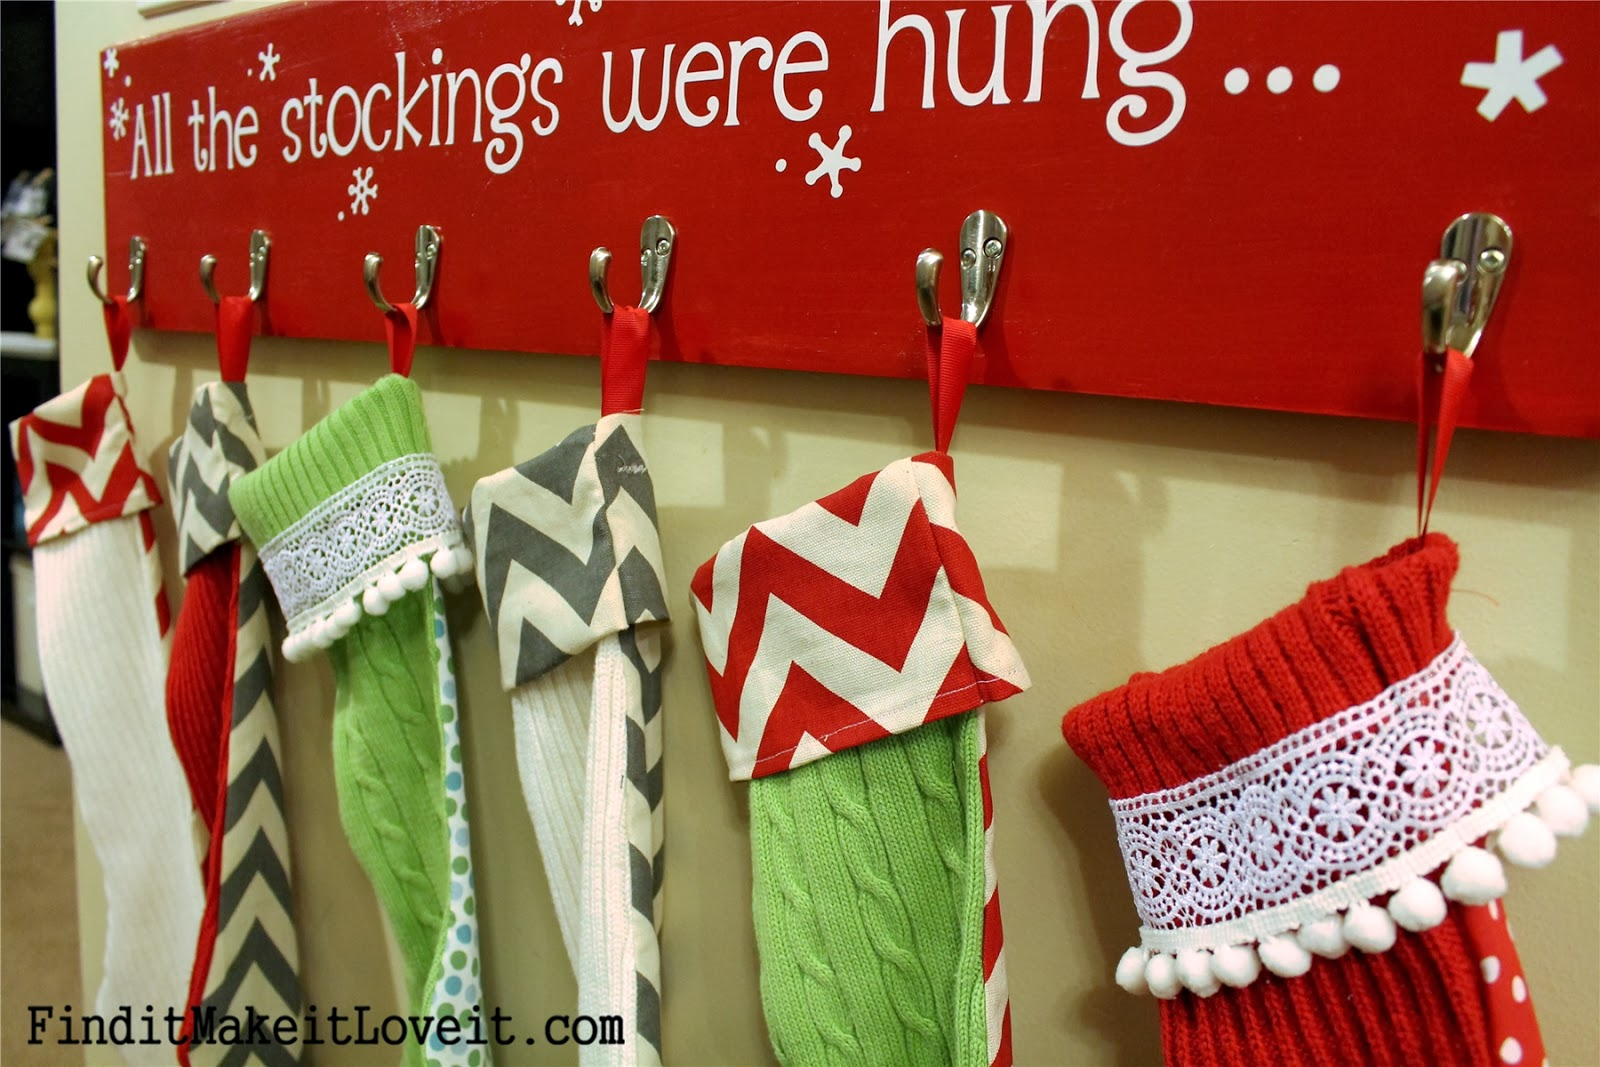 Diy stockings from thrift store sweaters find it make it love it solutioingenieria Choice Image